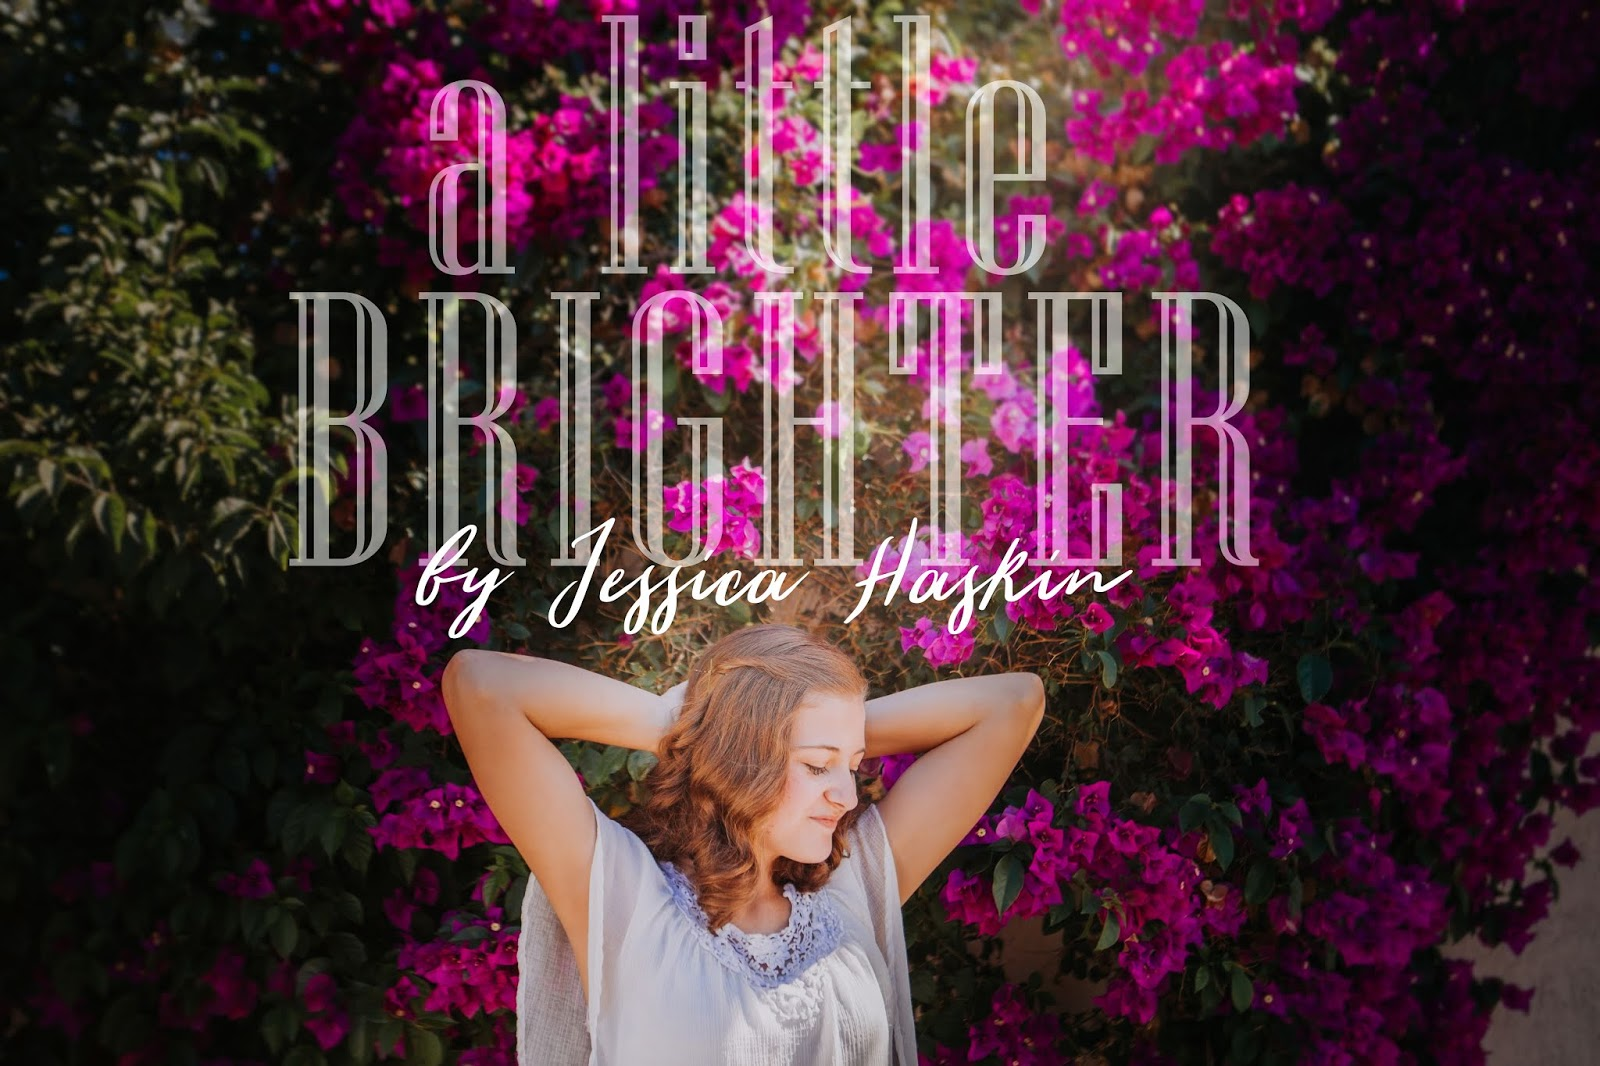 A little brighter by Jessica Haskin